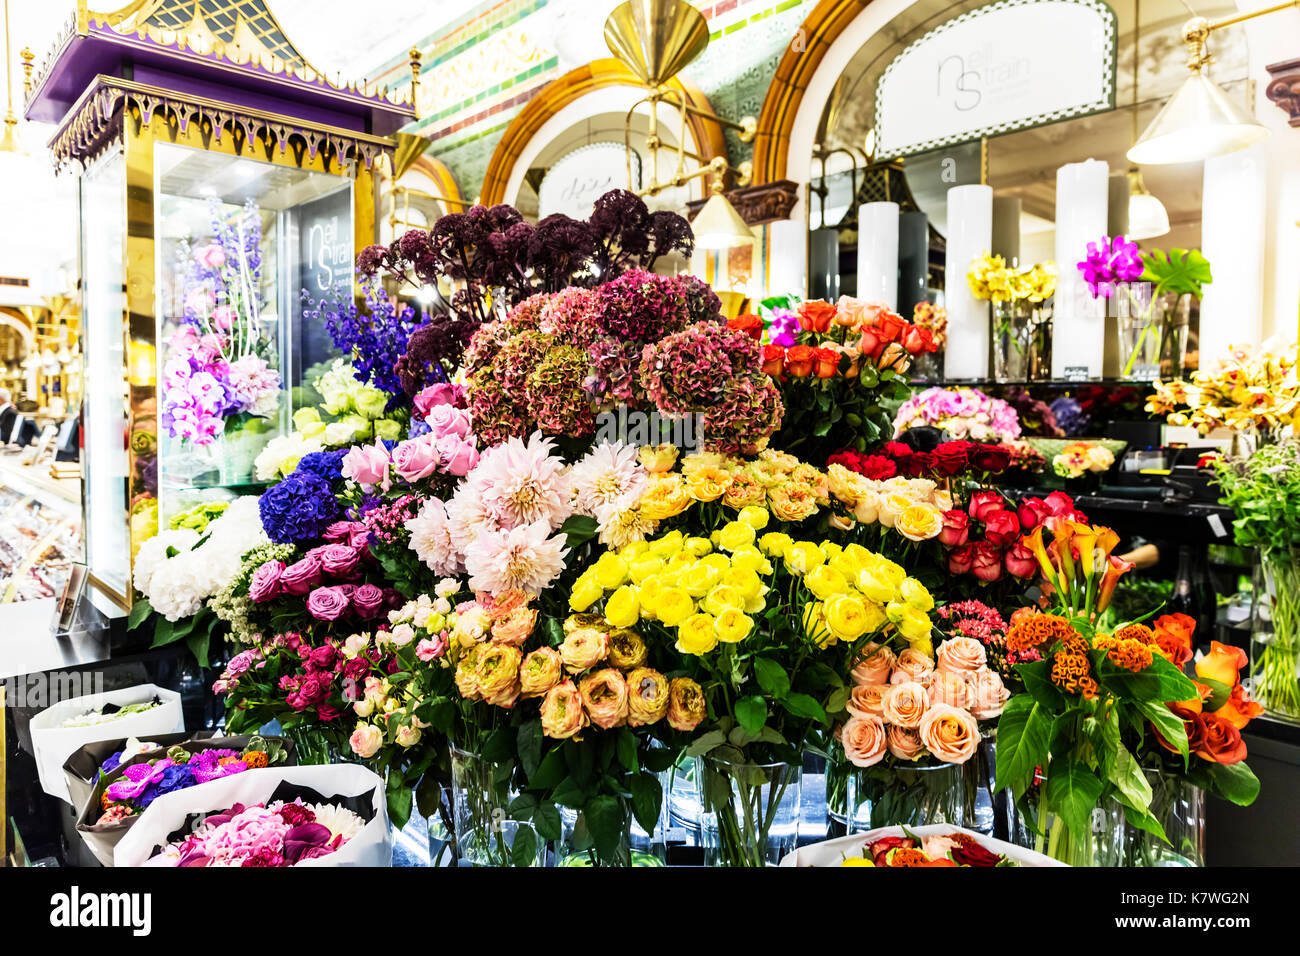 Flower Store Stock Photos Flower Store Stock Images Alamy